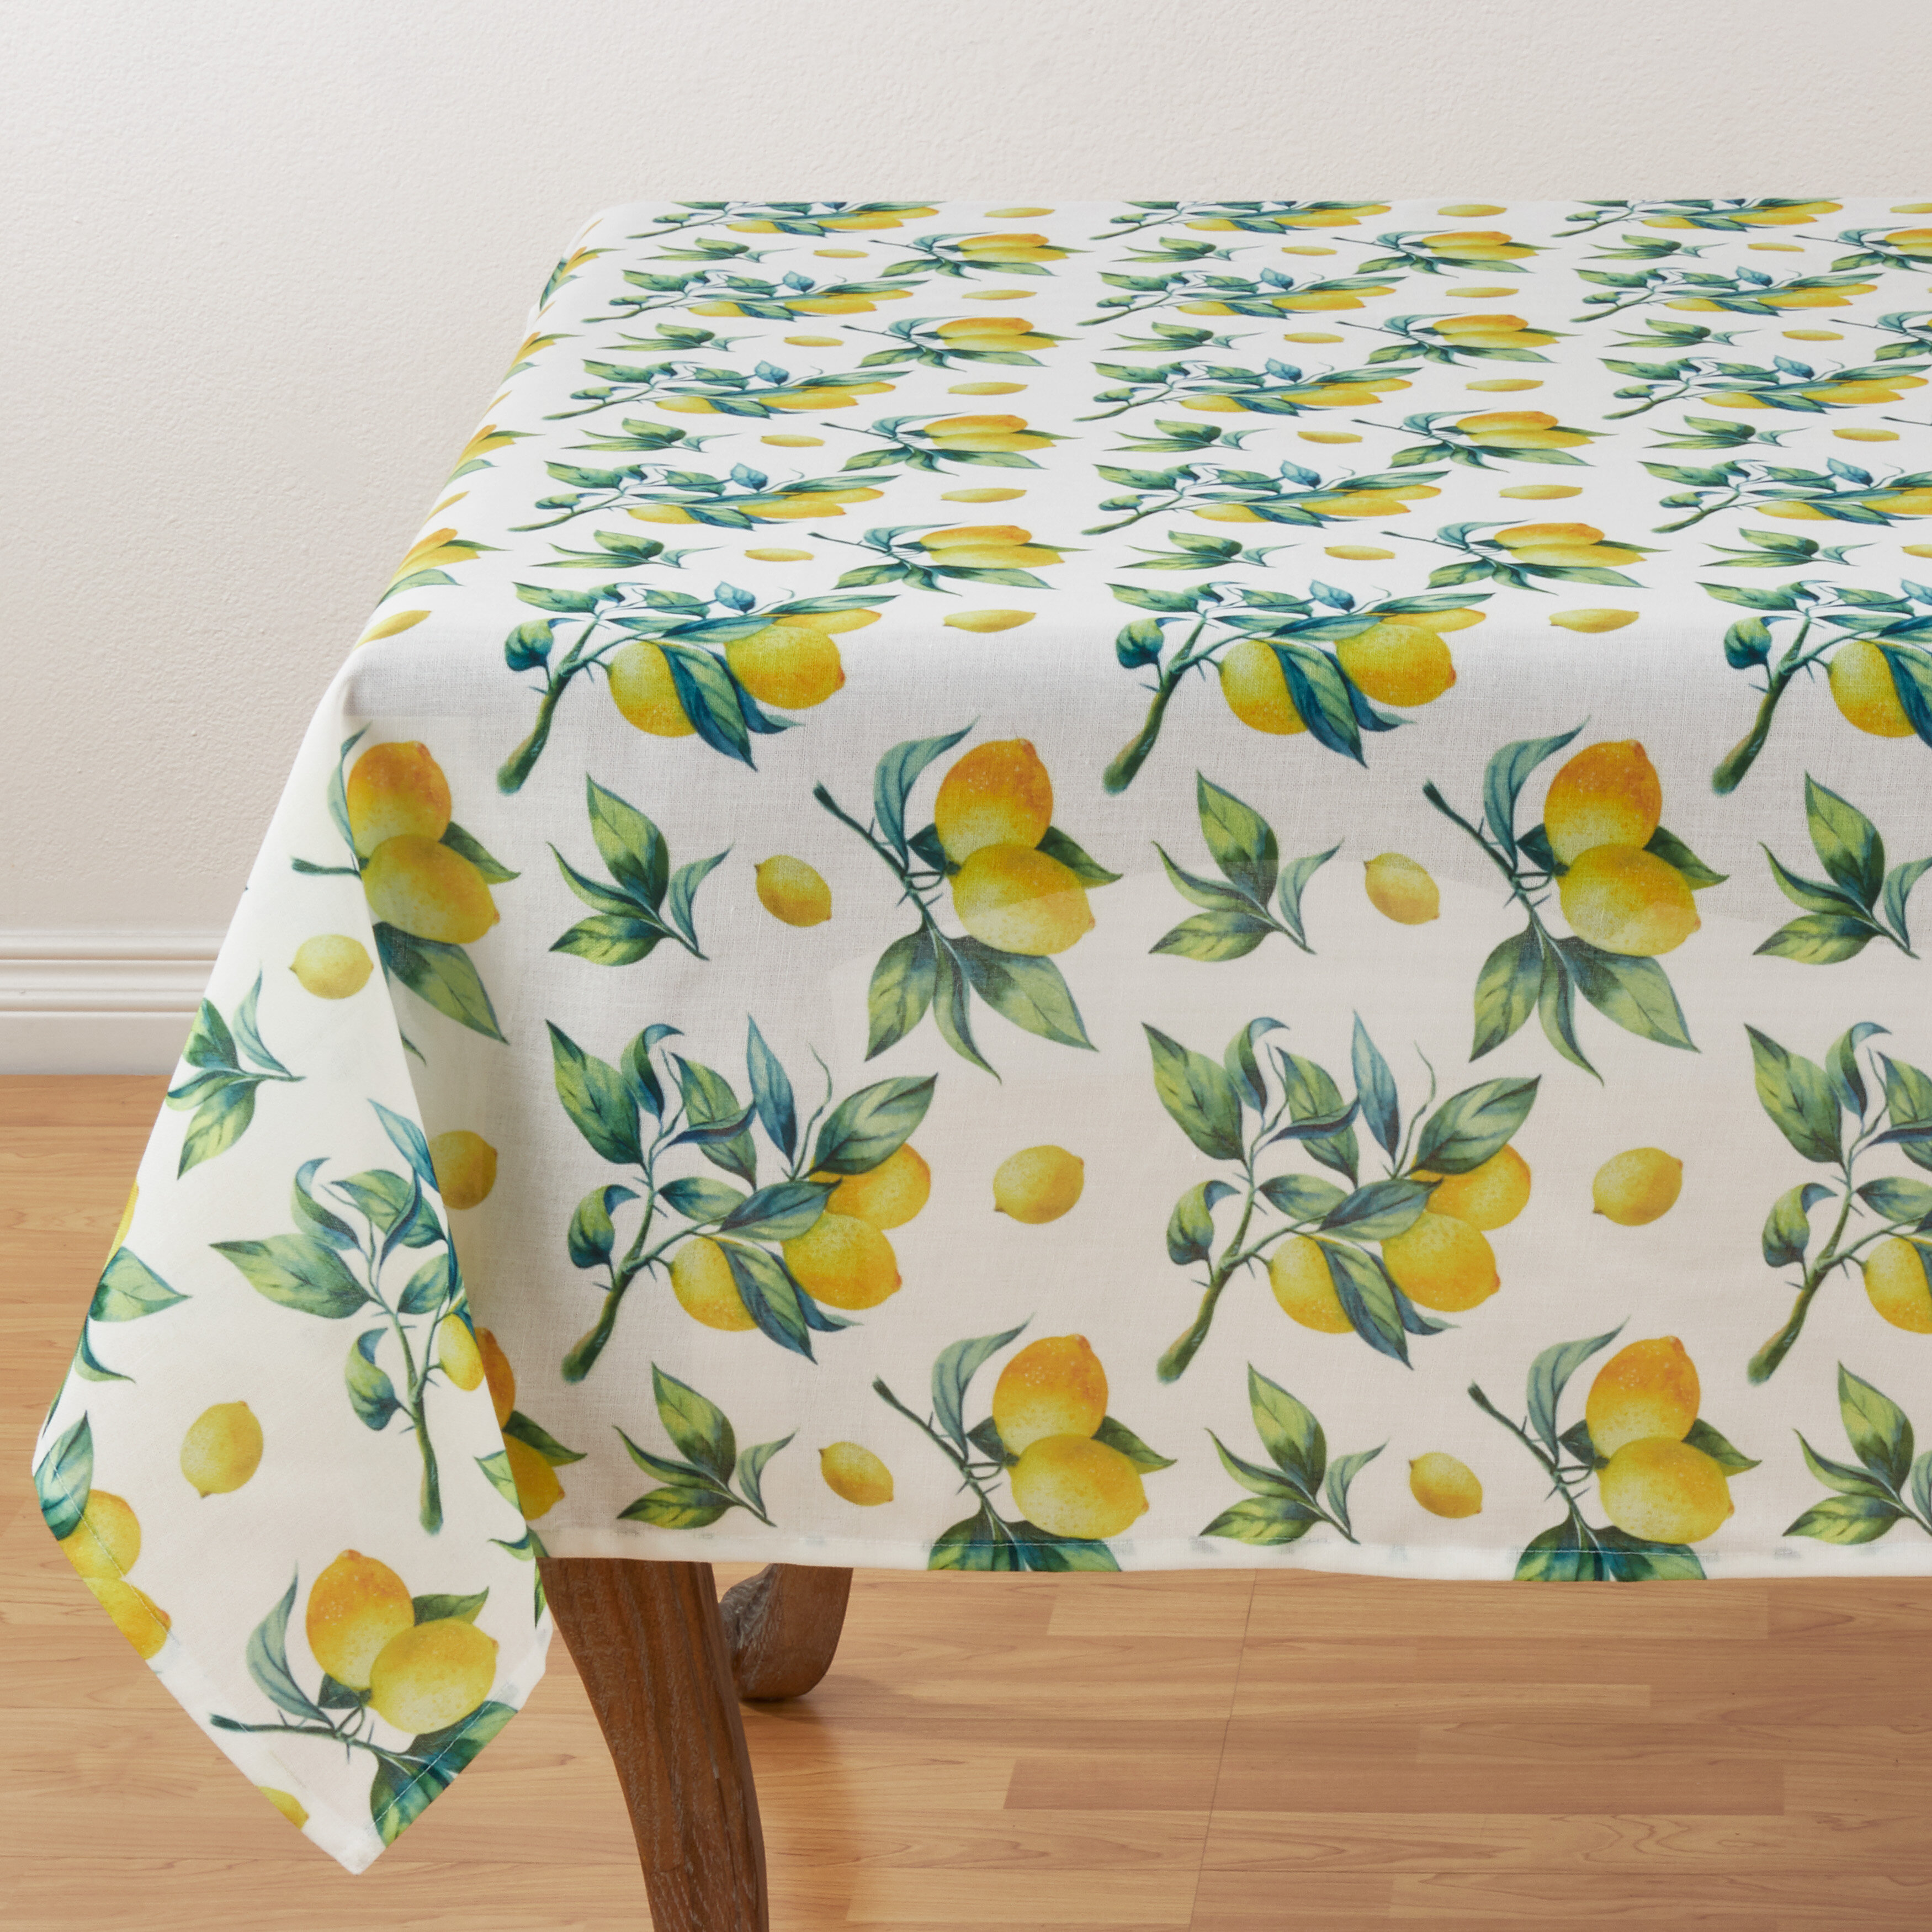 Lemon Pattern Printed Polyester Dinner Table Cover Xmas Party Decor Tablecloth